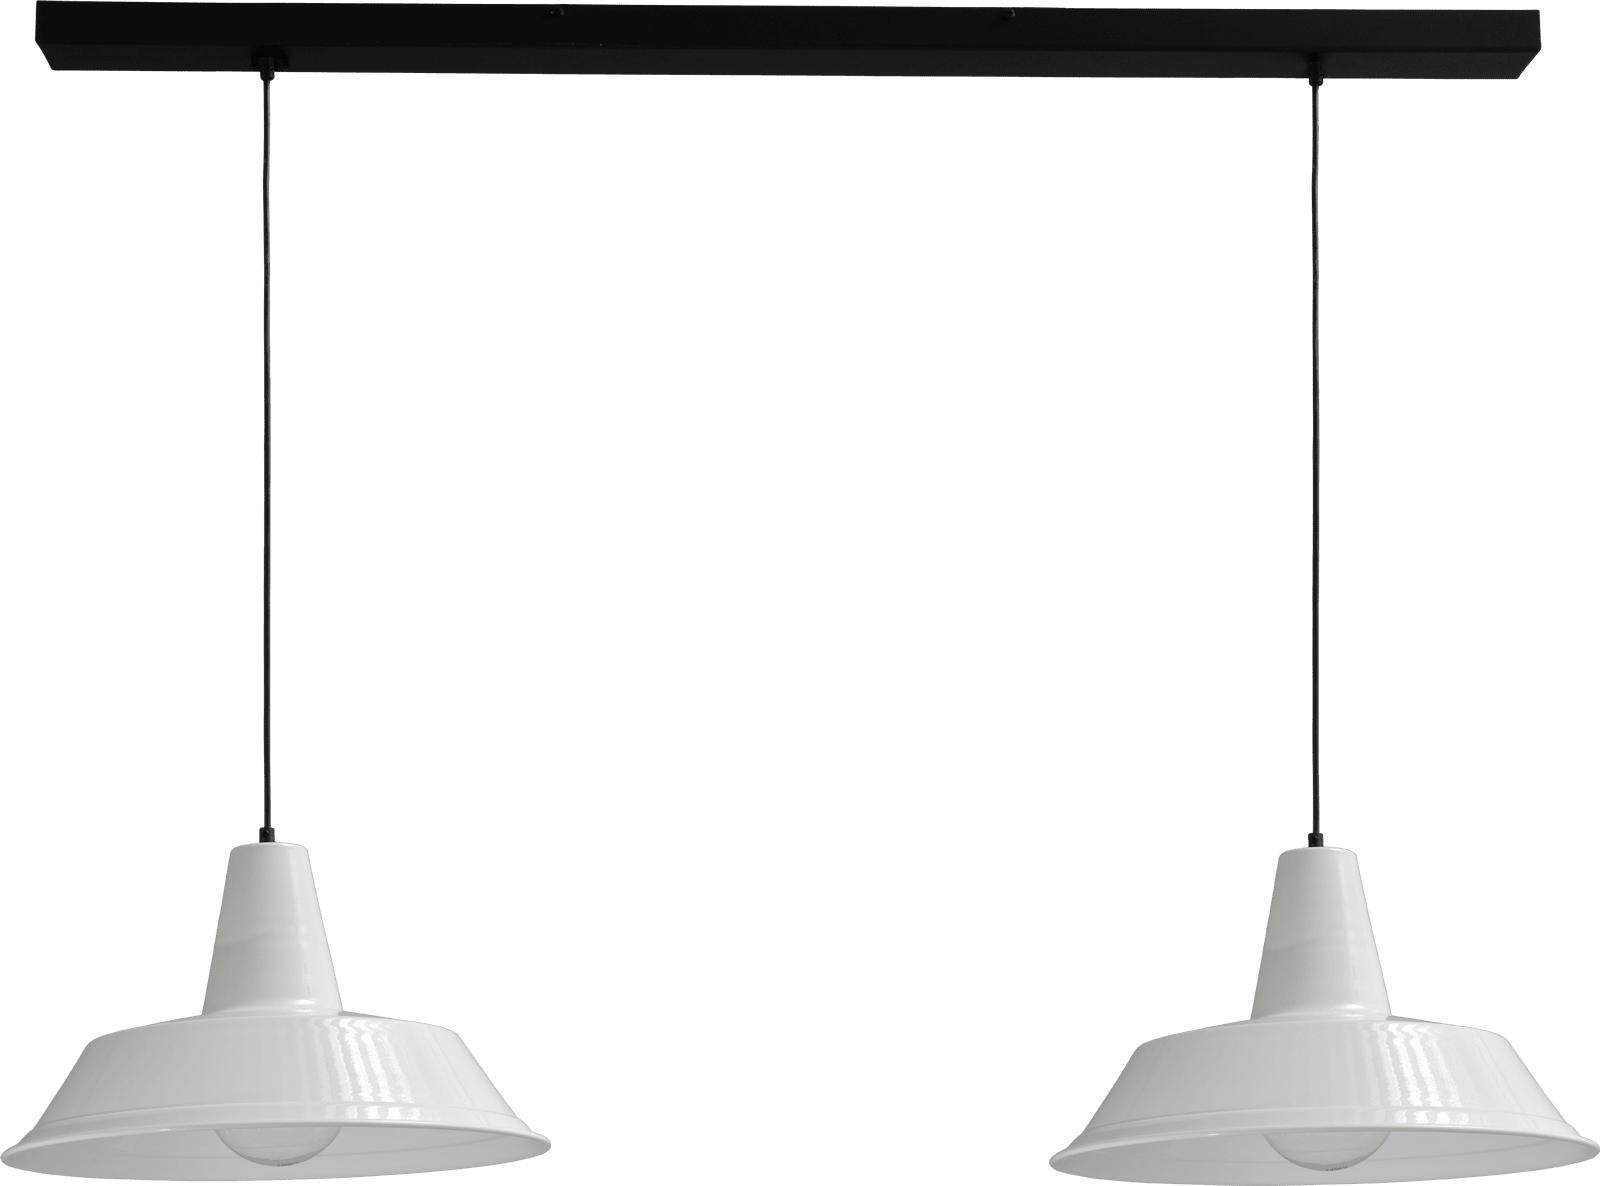 Prato HL PRATO 2LTS WHITE - BLACK BAR 130X8CM